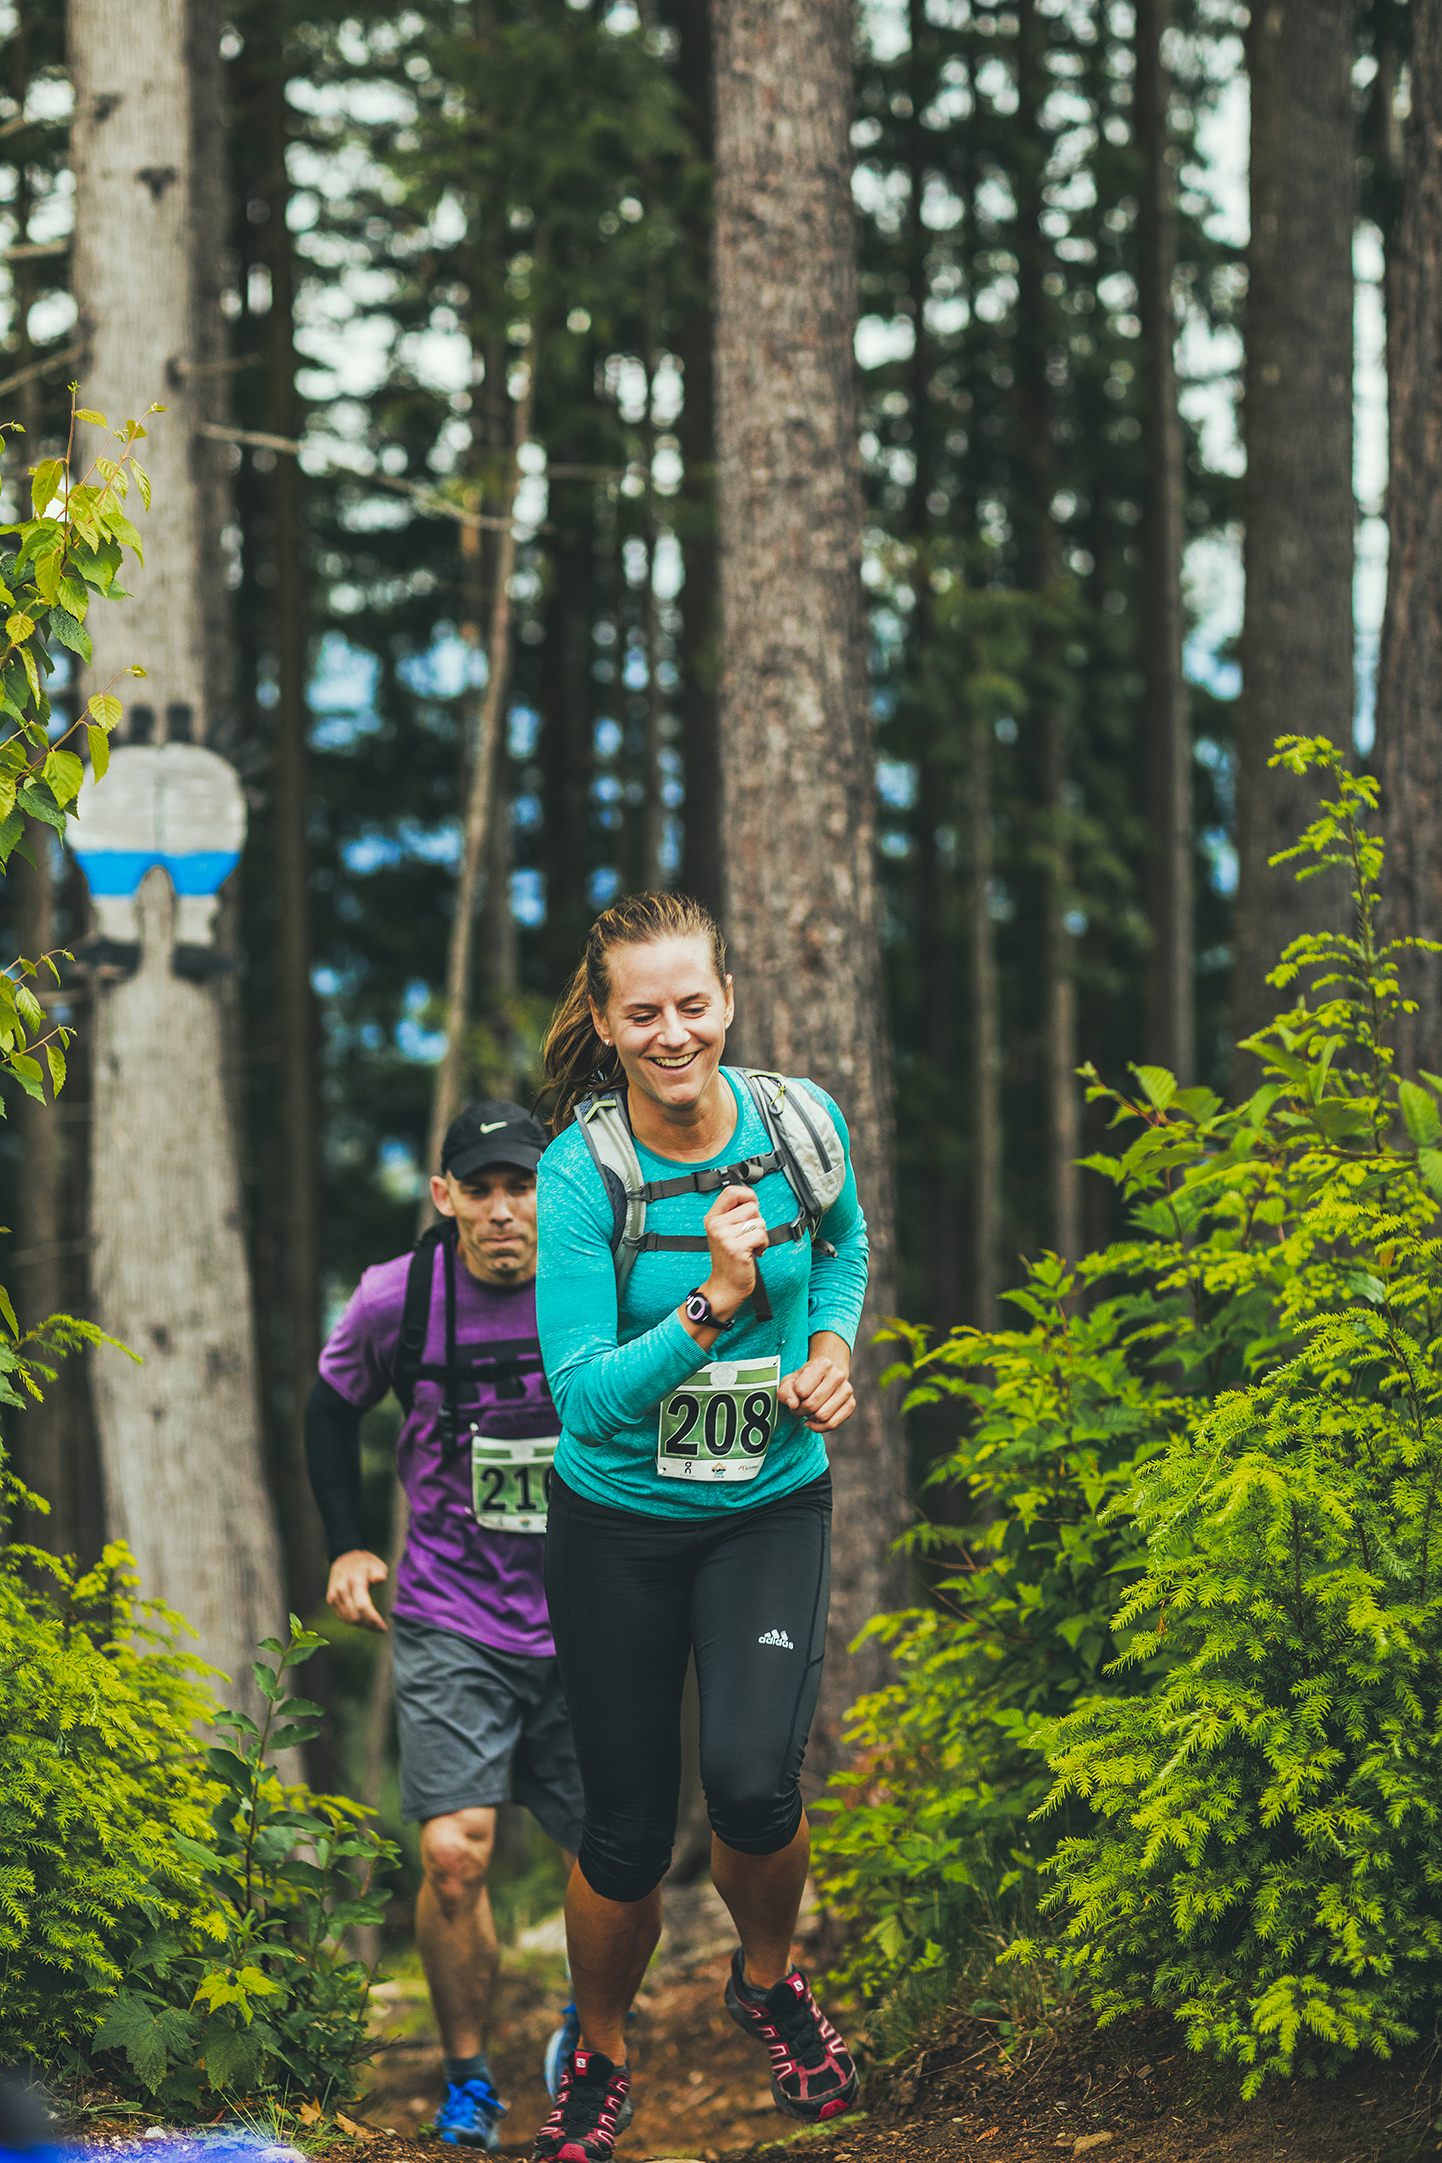 Fraser Valley Trail Races - Bear Mountain - IMG_1688 by Brice Ferre Studio - Vancouver Portrait Adventure and Athlete Photographer.jpg